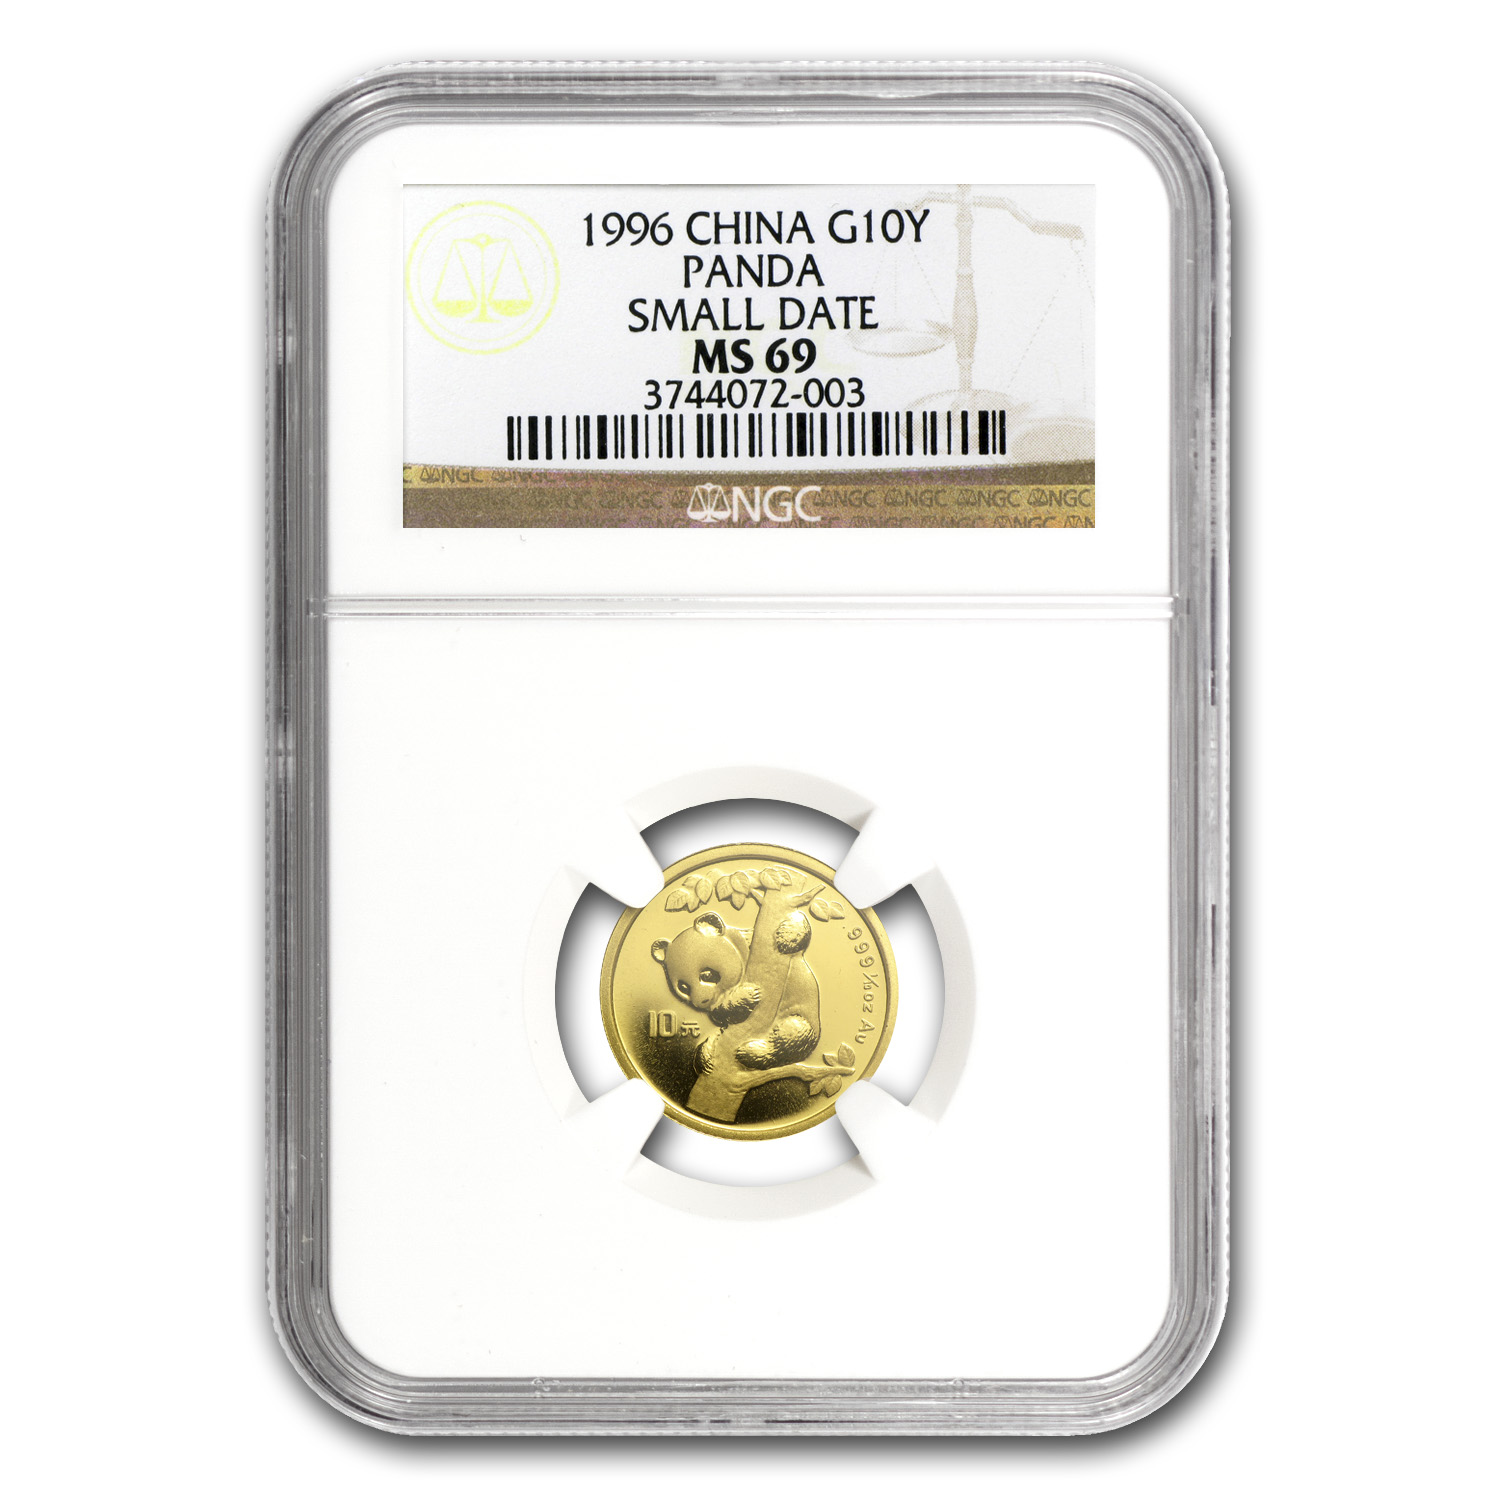 1996 China 1/10 oz Gold Panda Small Date MS-69 NGC